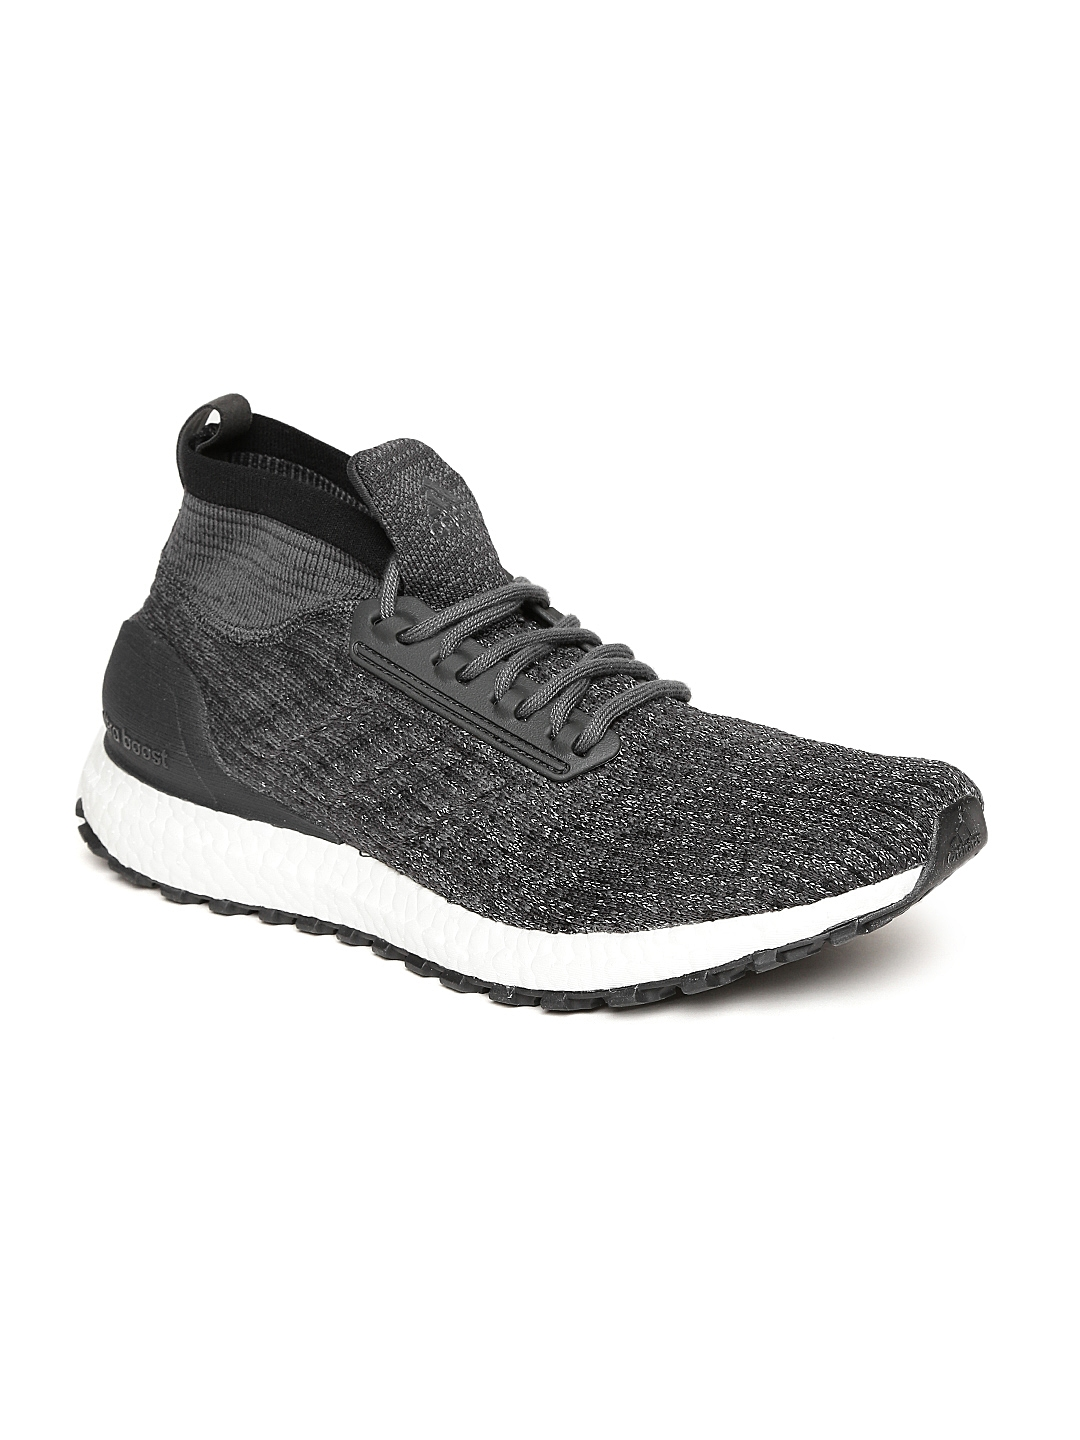 6003c62457e69 Buy ADIDAS Men Charcoal Grey Ultraboost All Terrain Ltd Running ...